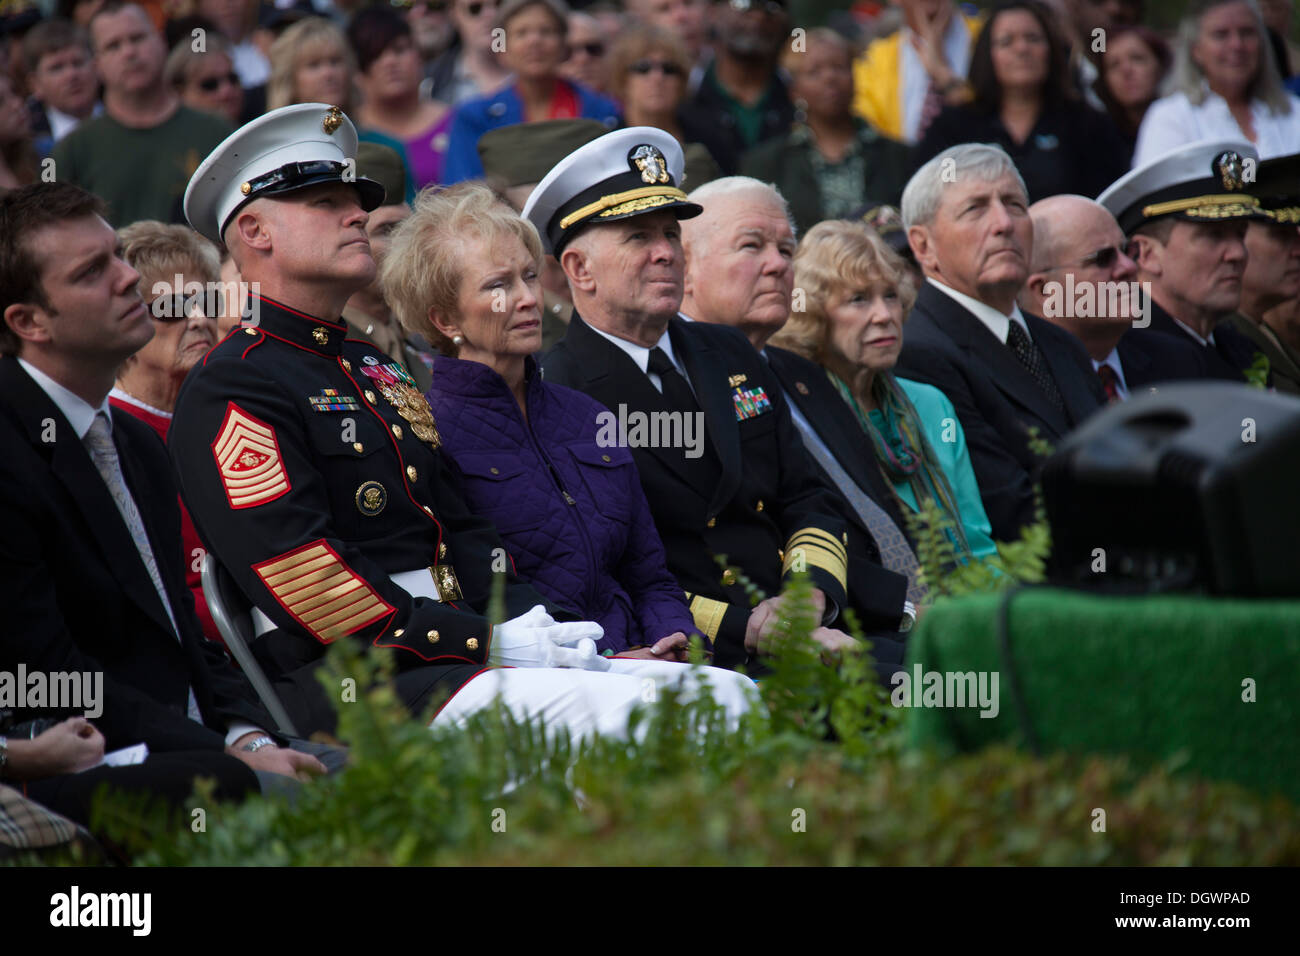 U.S. Marine Corps Sgt. Maj. Michael P. Barrett, left, 17th Sergeant Major of the Marine Corps, attends the 30th Beirut Memorial - Stock Image